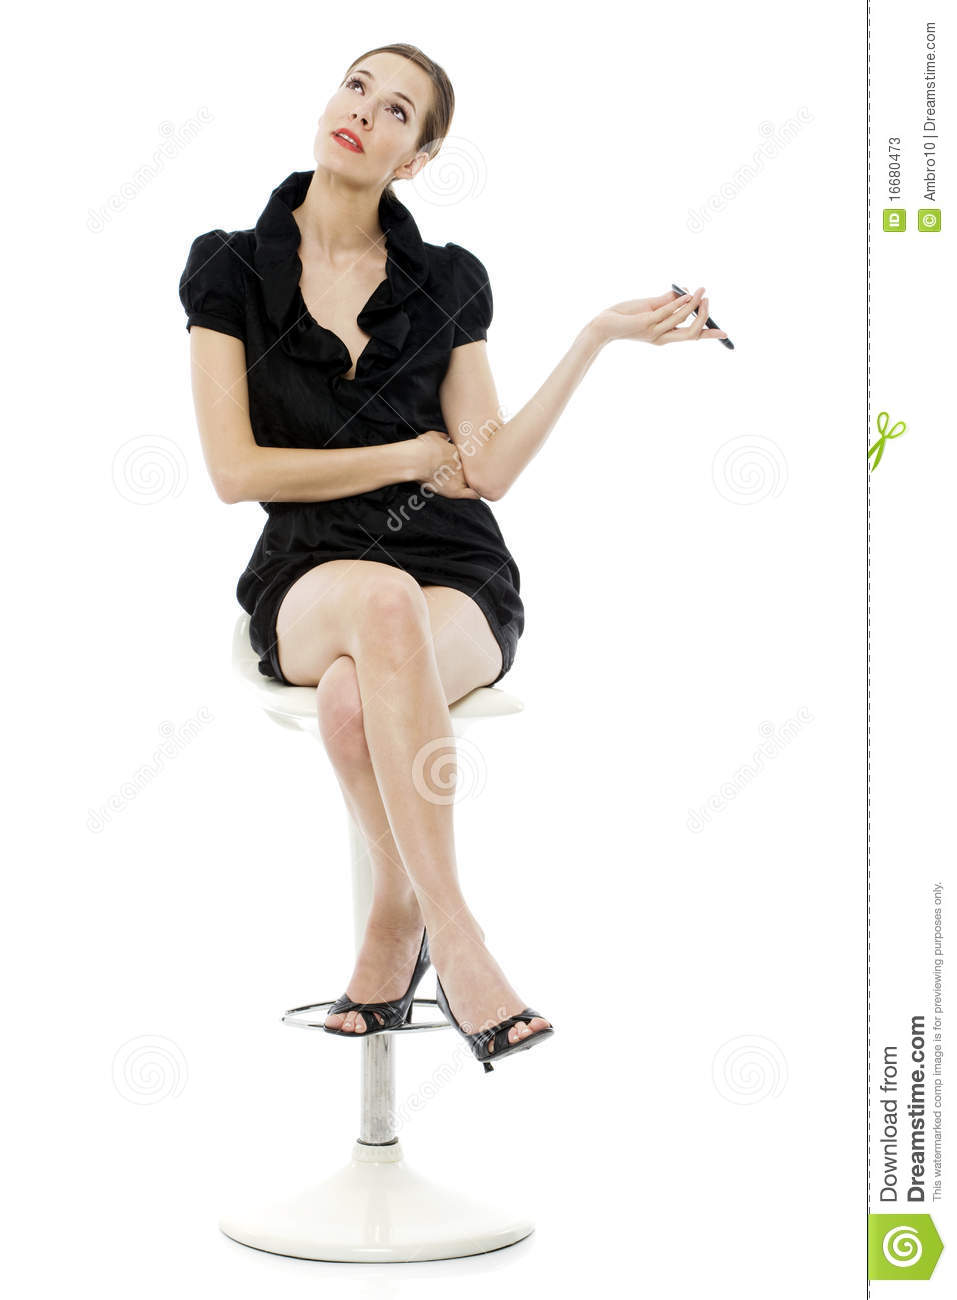 Woman Sitting On A Stool Holding A Cellphon Stock Photos